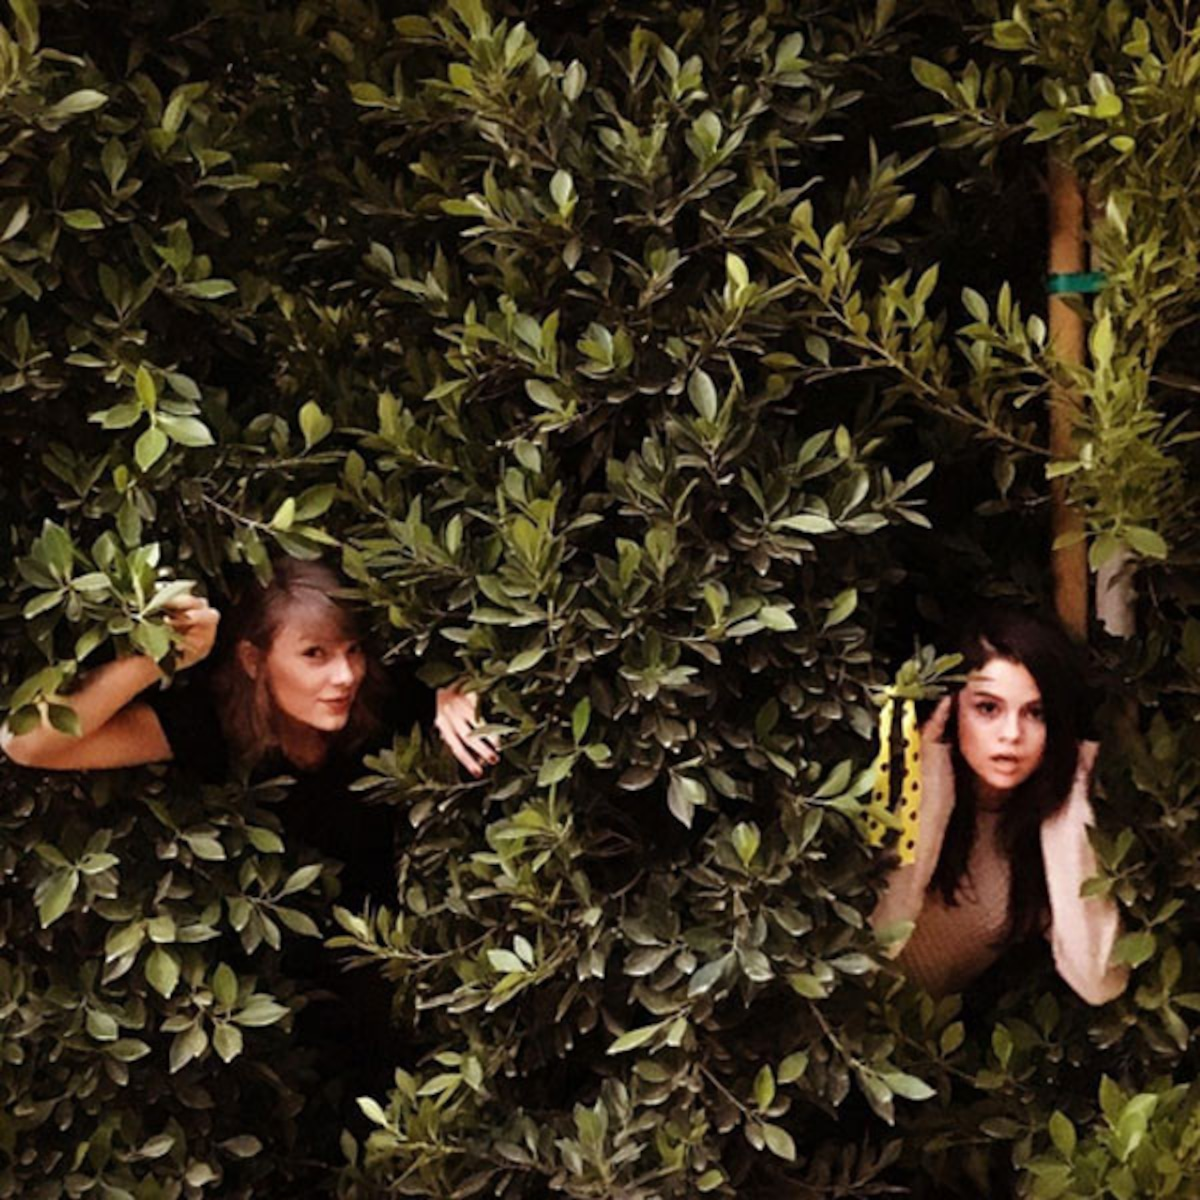 T Swift Selena Are Getting Out Of The Woods In Funny Ig Pics E Online